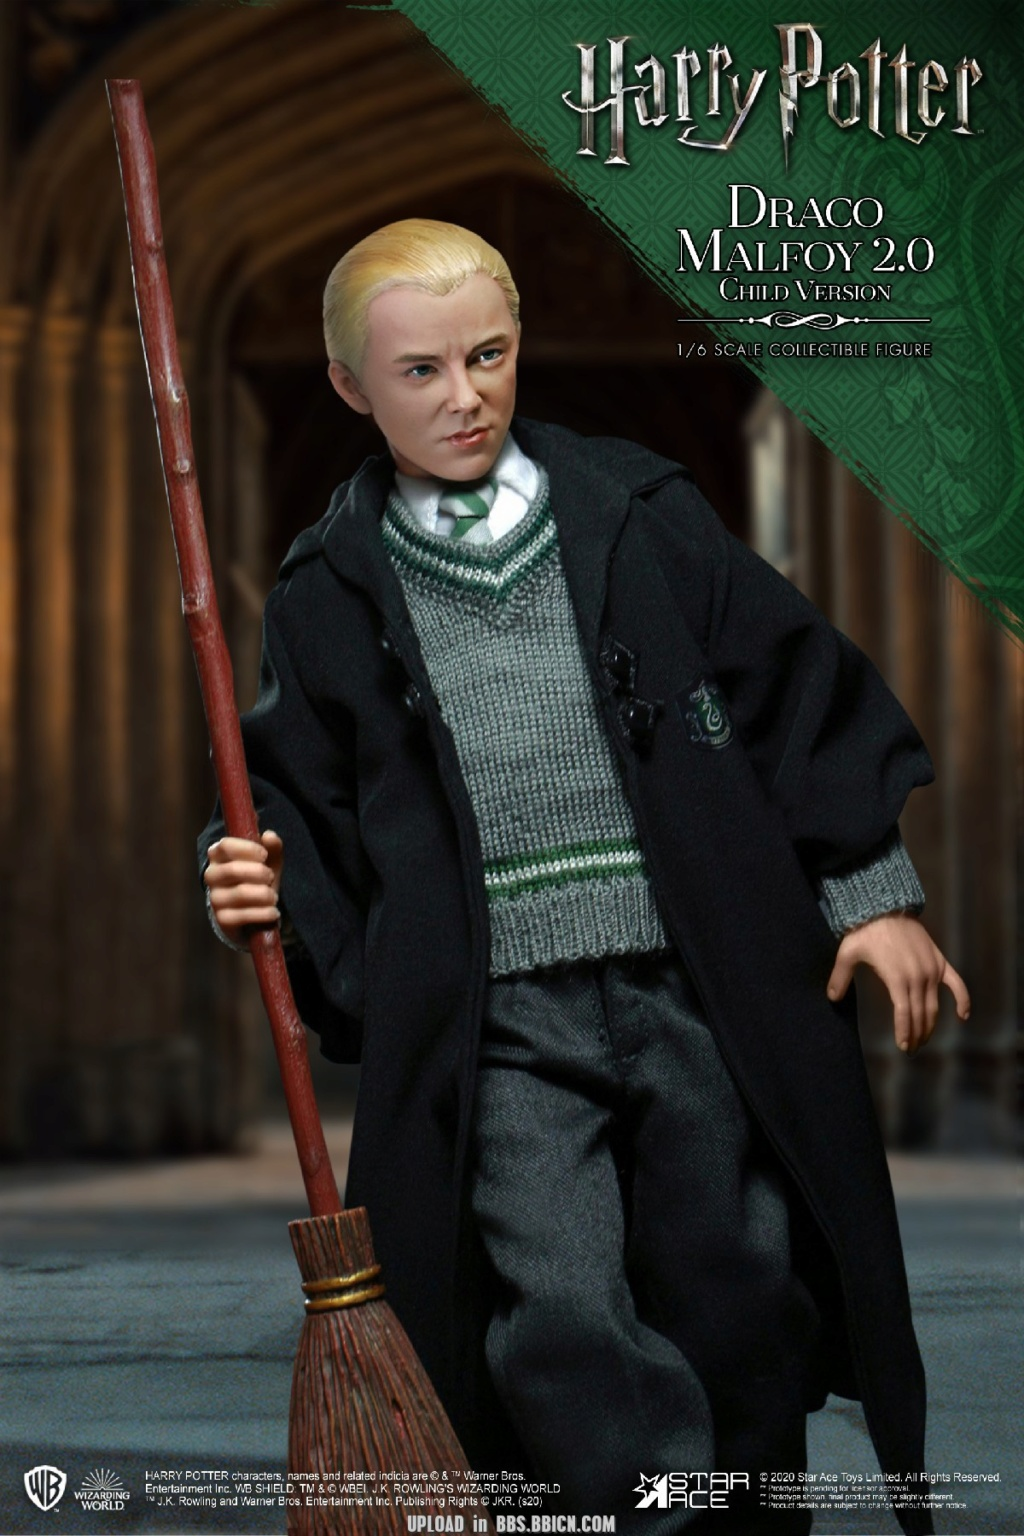 DracoMalfoy2 - NEW PRODUCT: STAR ACE Toys: 1/6 Harry Potter + Malfoy 2.0 Playing Set & Single & Uniform Edition 17081610